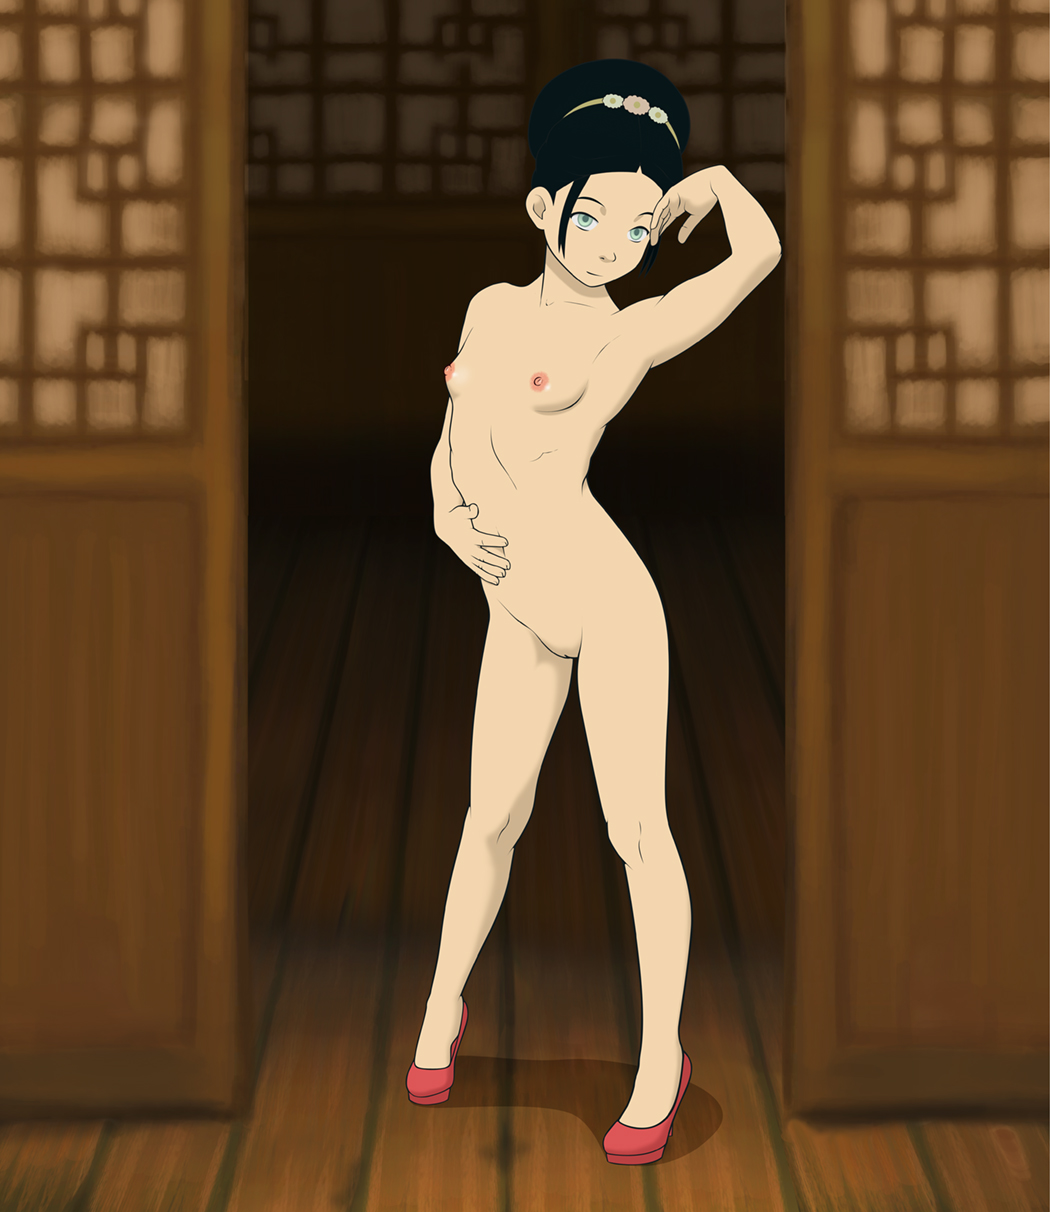 Avatar The Last Airbender Naked rule 34 - anaxus avatar the last airbender black hair blind